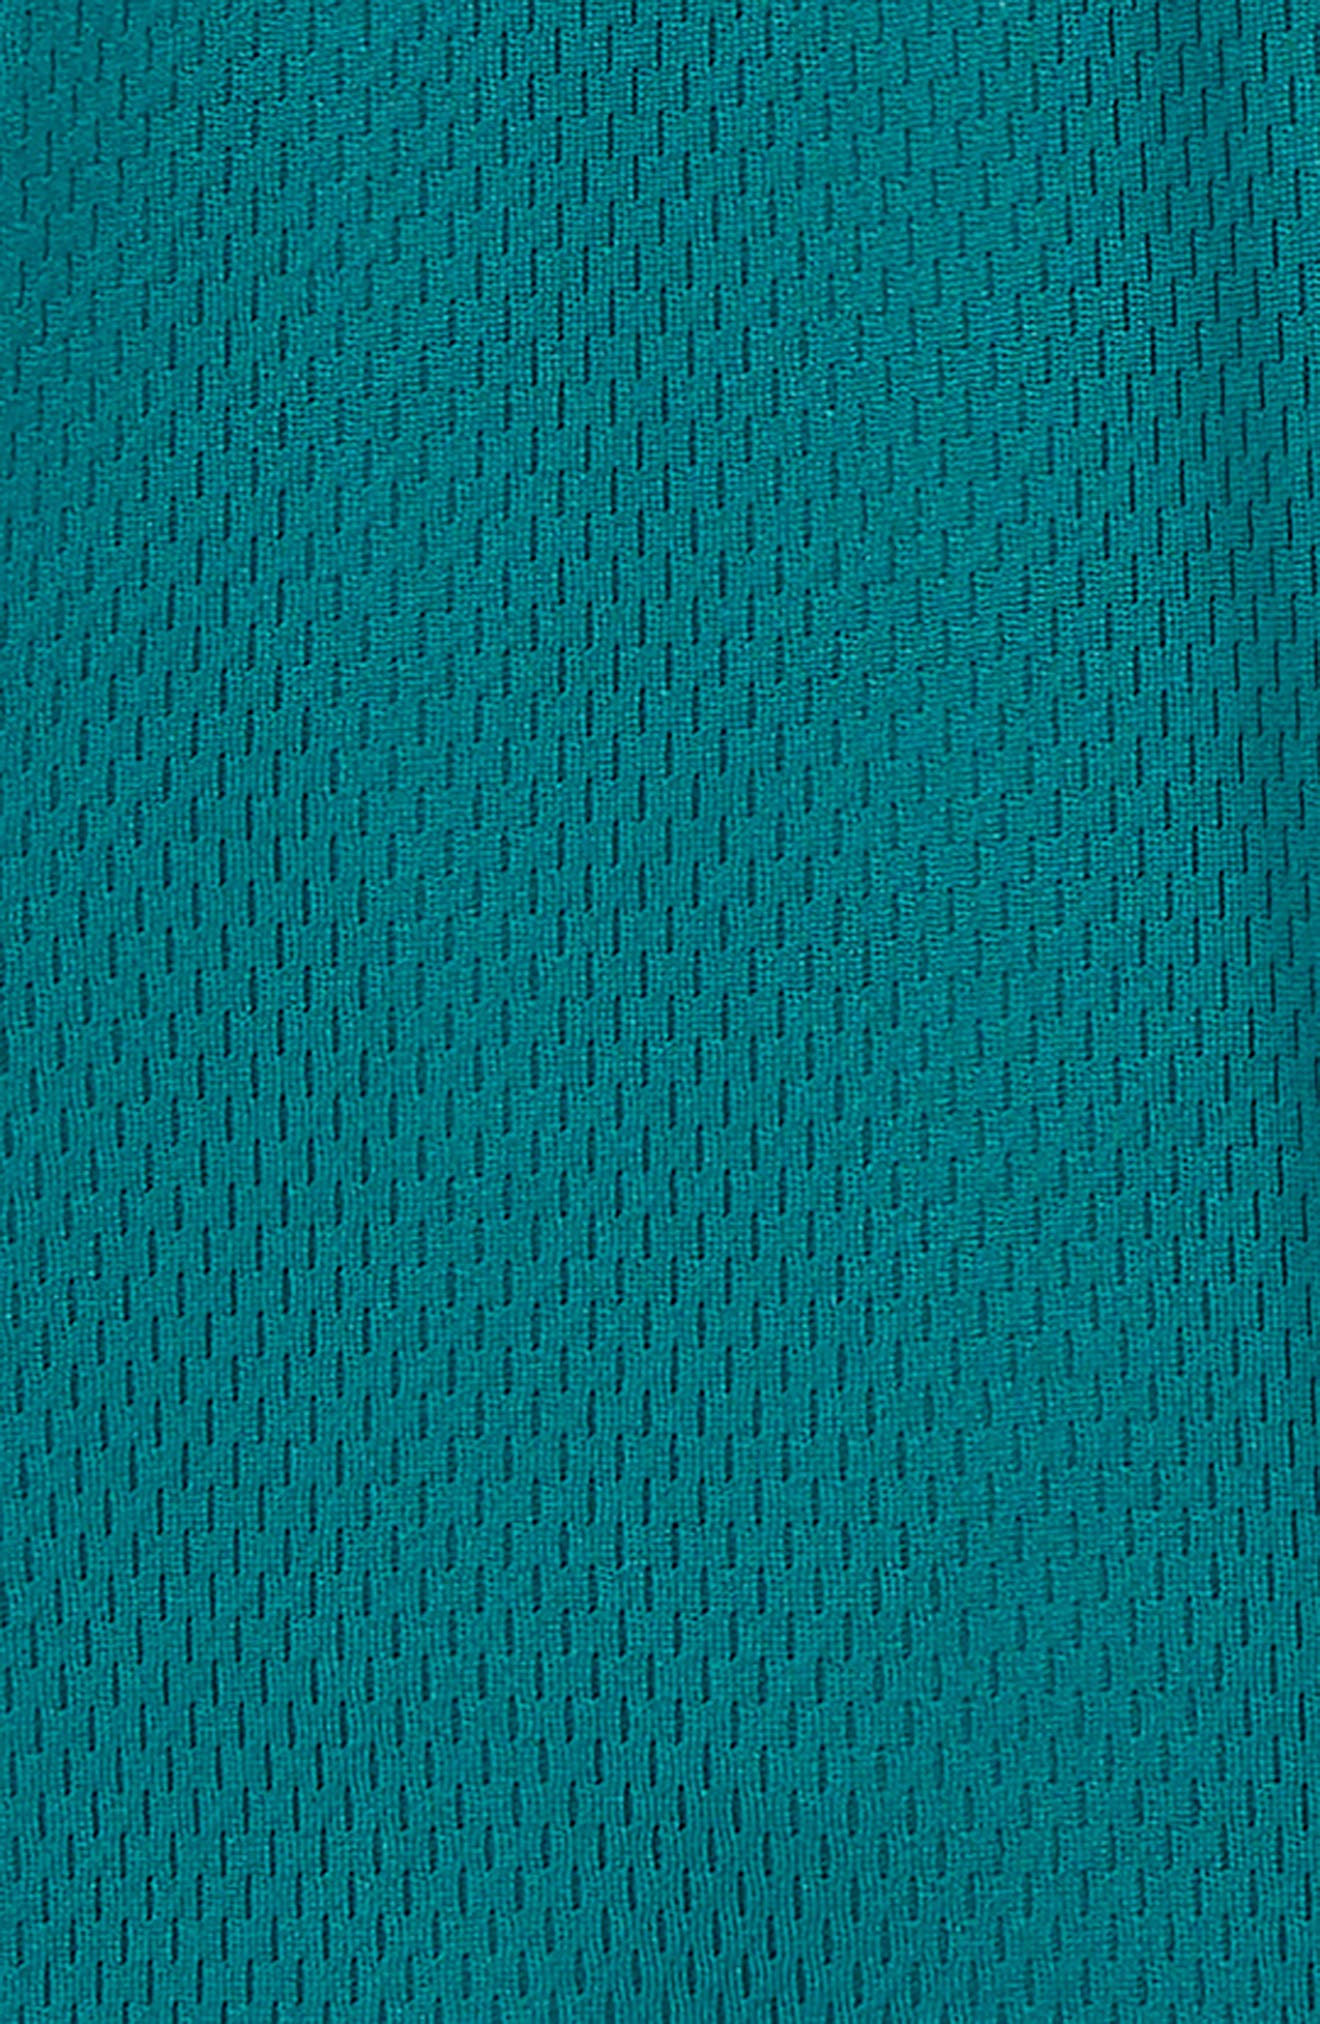 Dry Elite Basketball Shorts,                             Alternate thumbnail 3, color,                             GEODE TEAL/ CONE